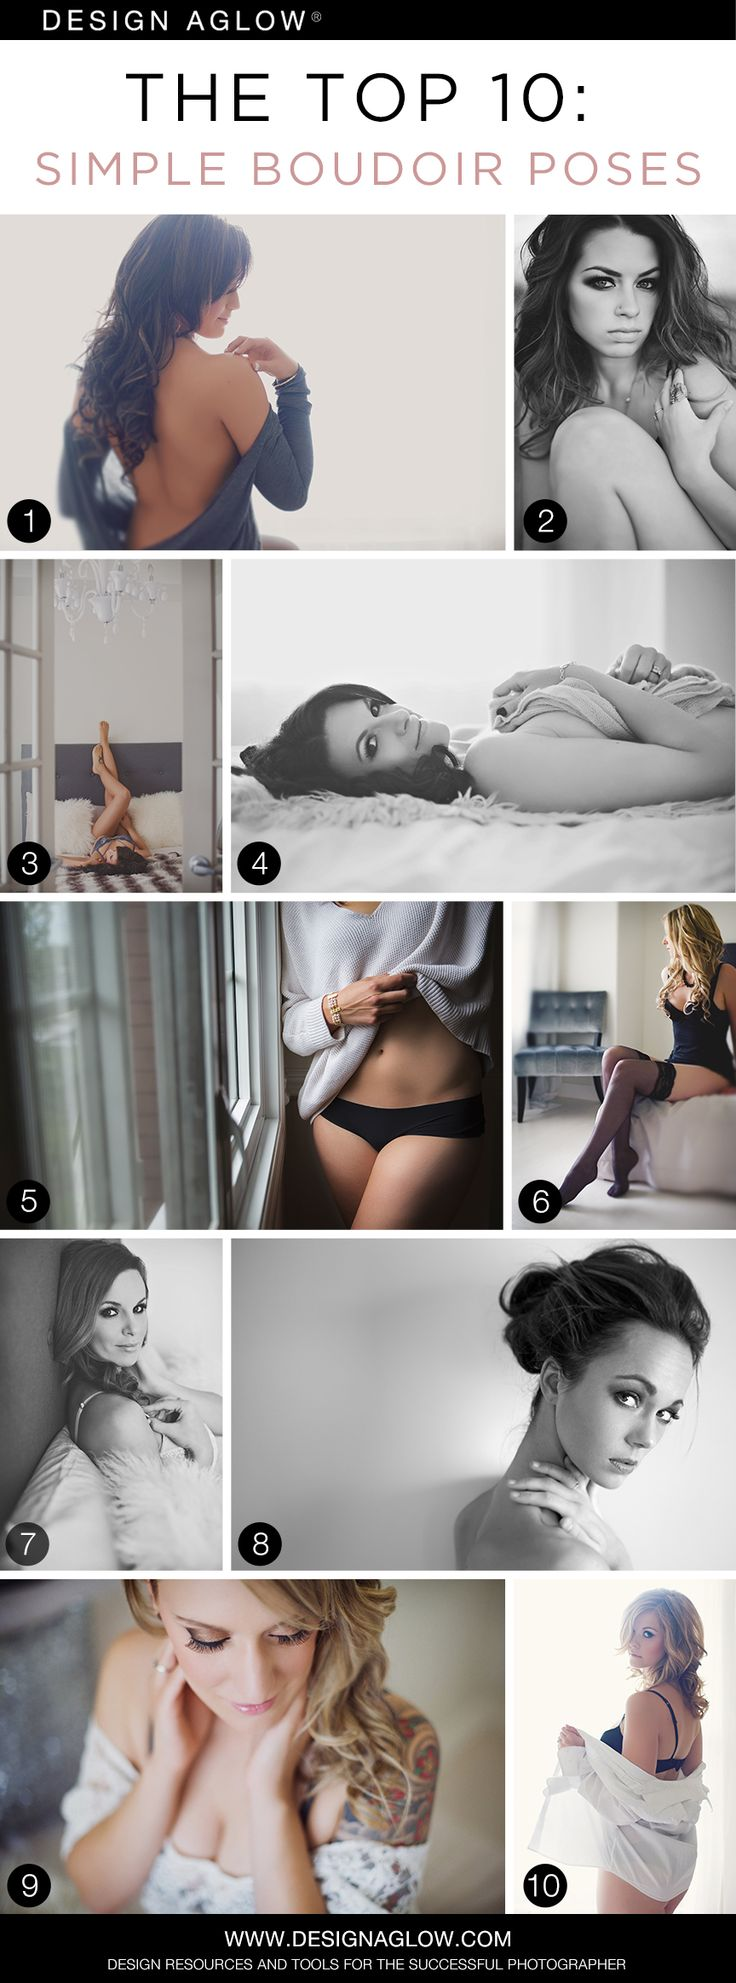 The Top 10: Simple Boudoir Poses